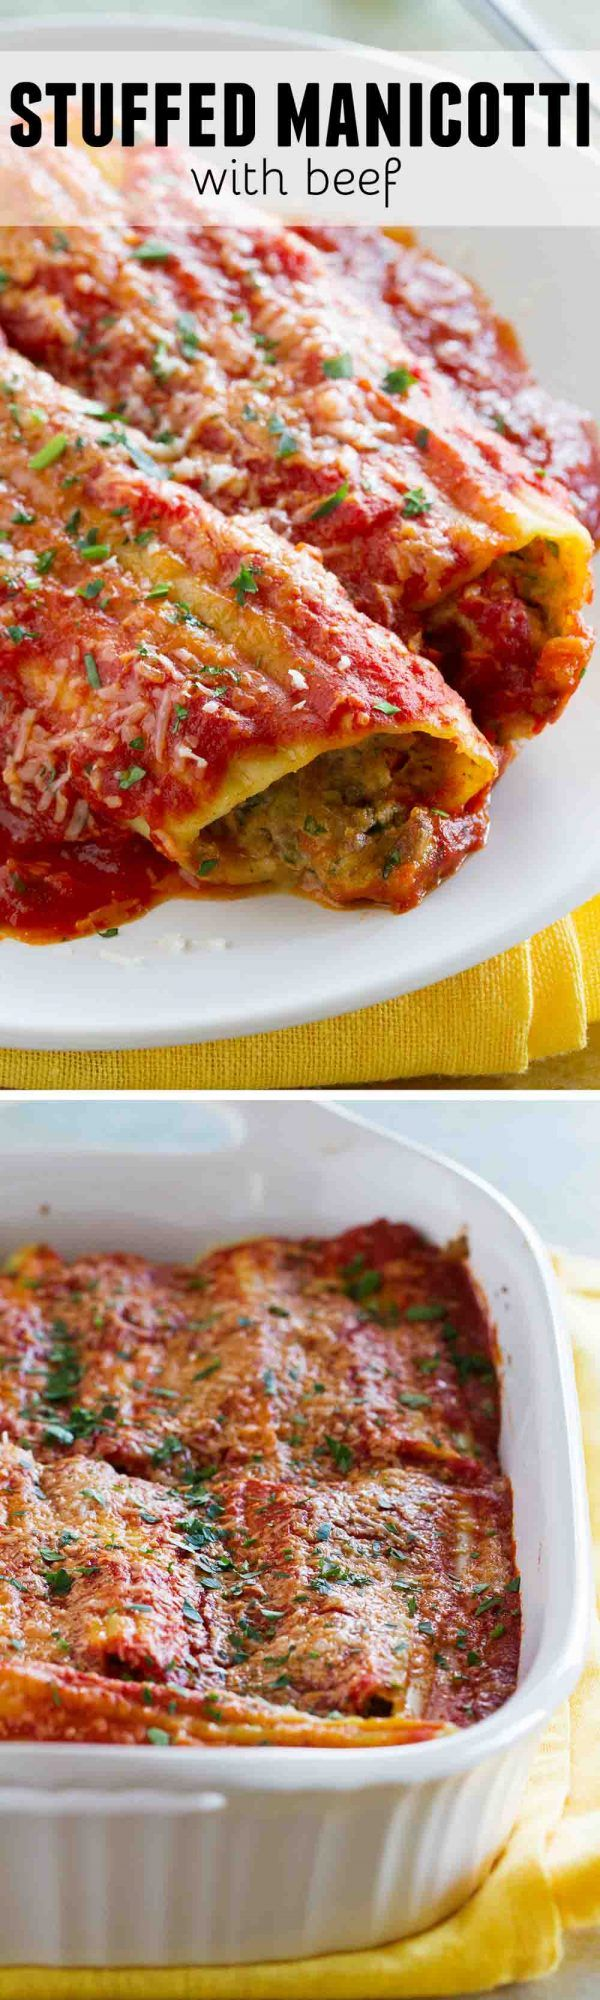 Now this is Sunday dinner! This Stuffed Manicotti with Beef has a slow cooked beef mixture that is combined with ham and cheese and stuffed in manicotti pasta. And if you make the sauce ahead of time, you can make this an easy weeknight dinner!